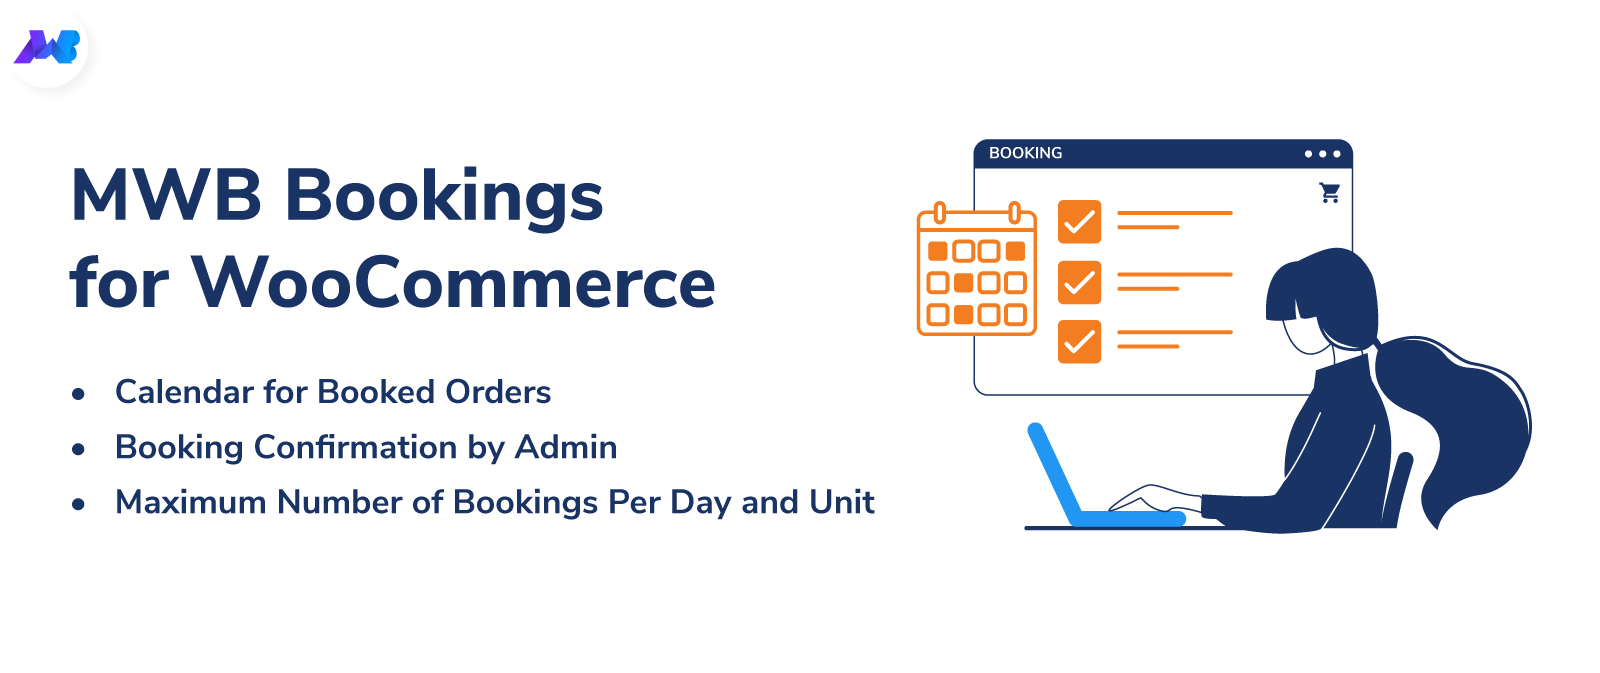 mwb bookings for woocommerce